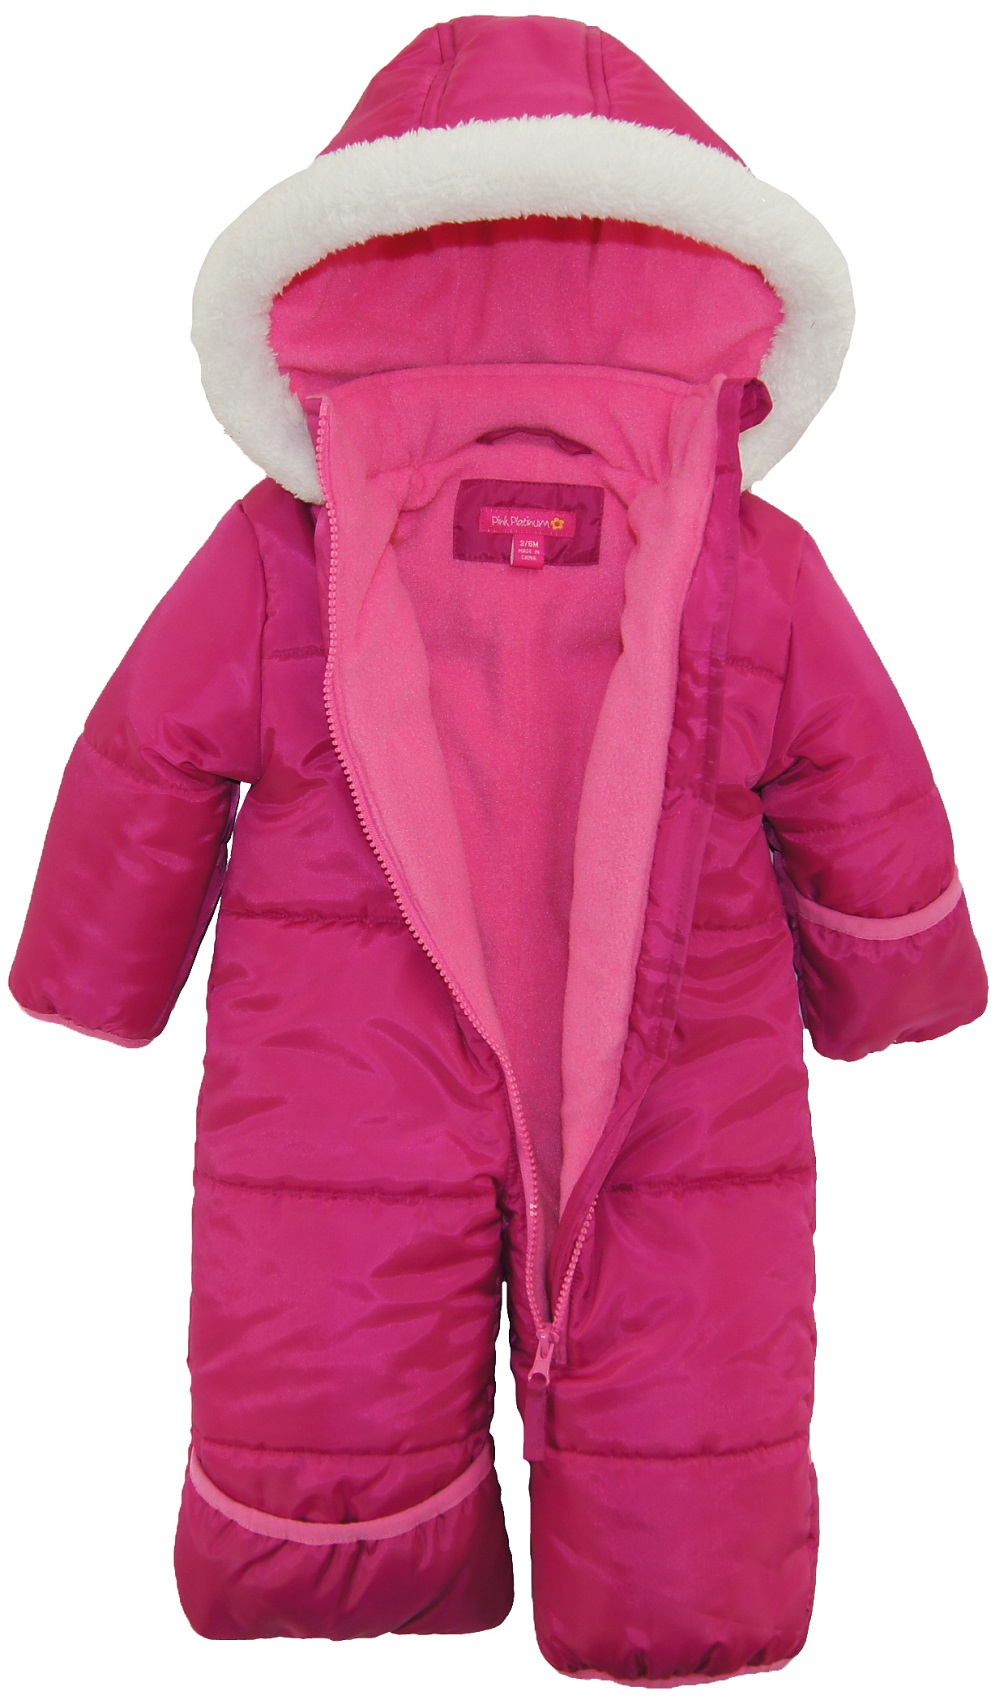 little coat girls puffer com ip winter walmart dots pink toddler jacket silver platinum polka